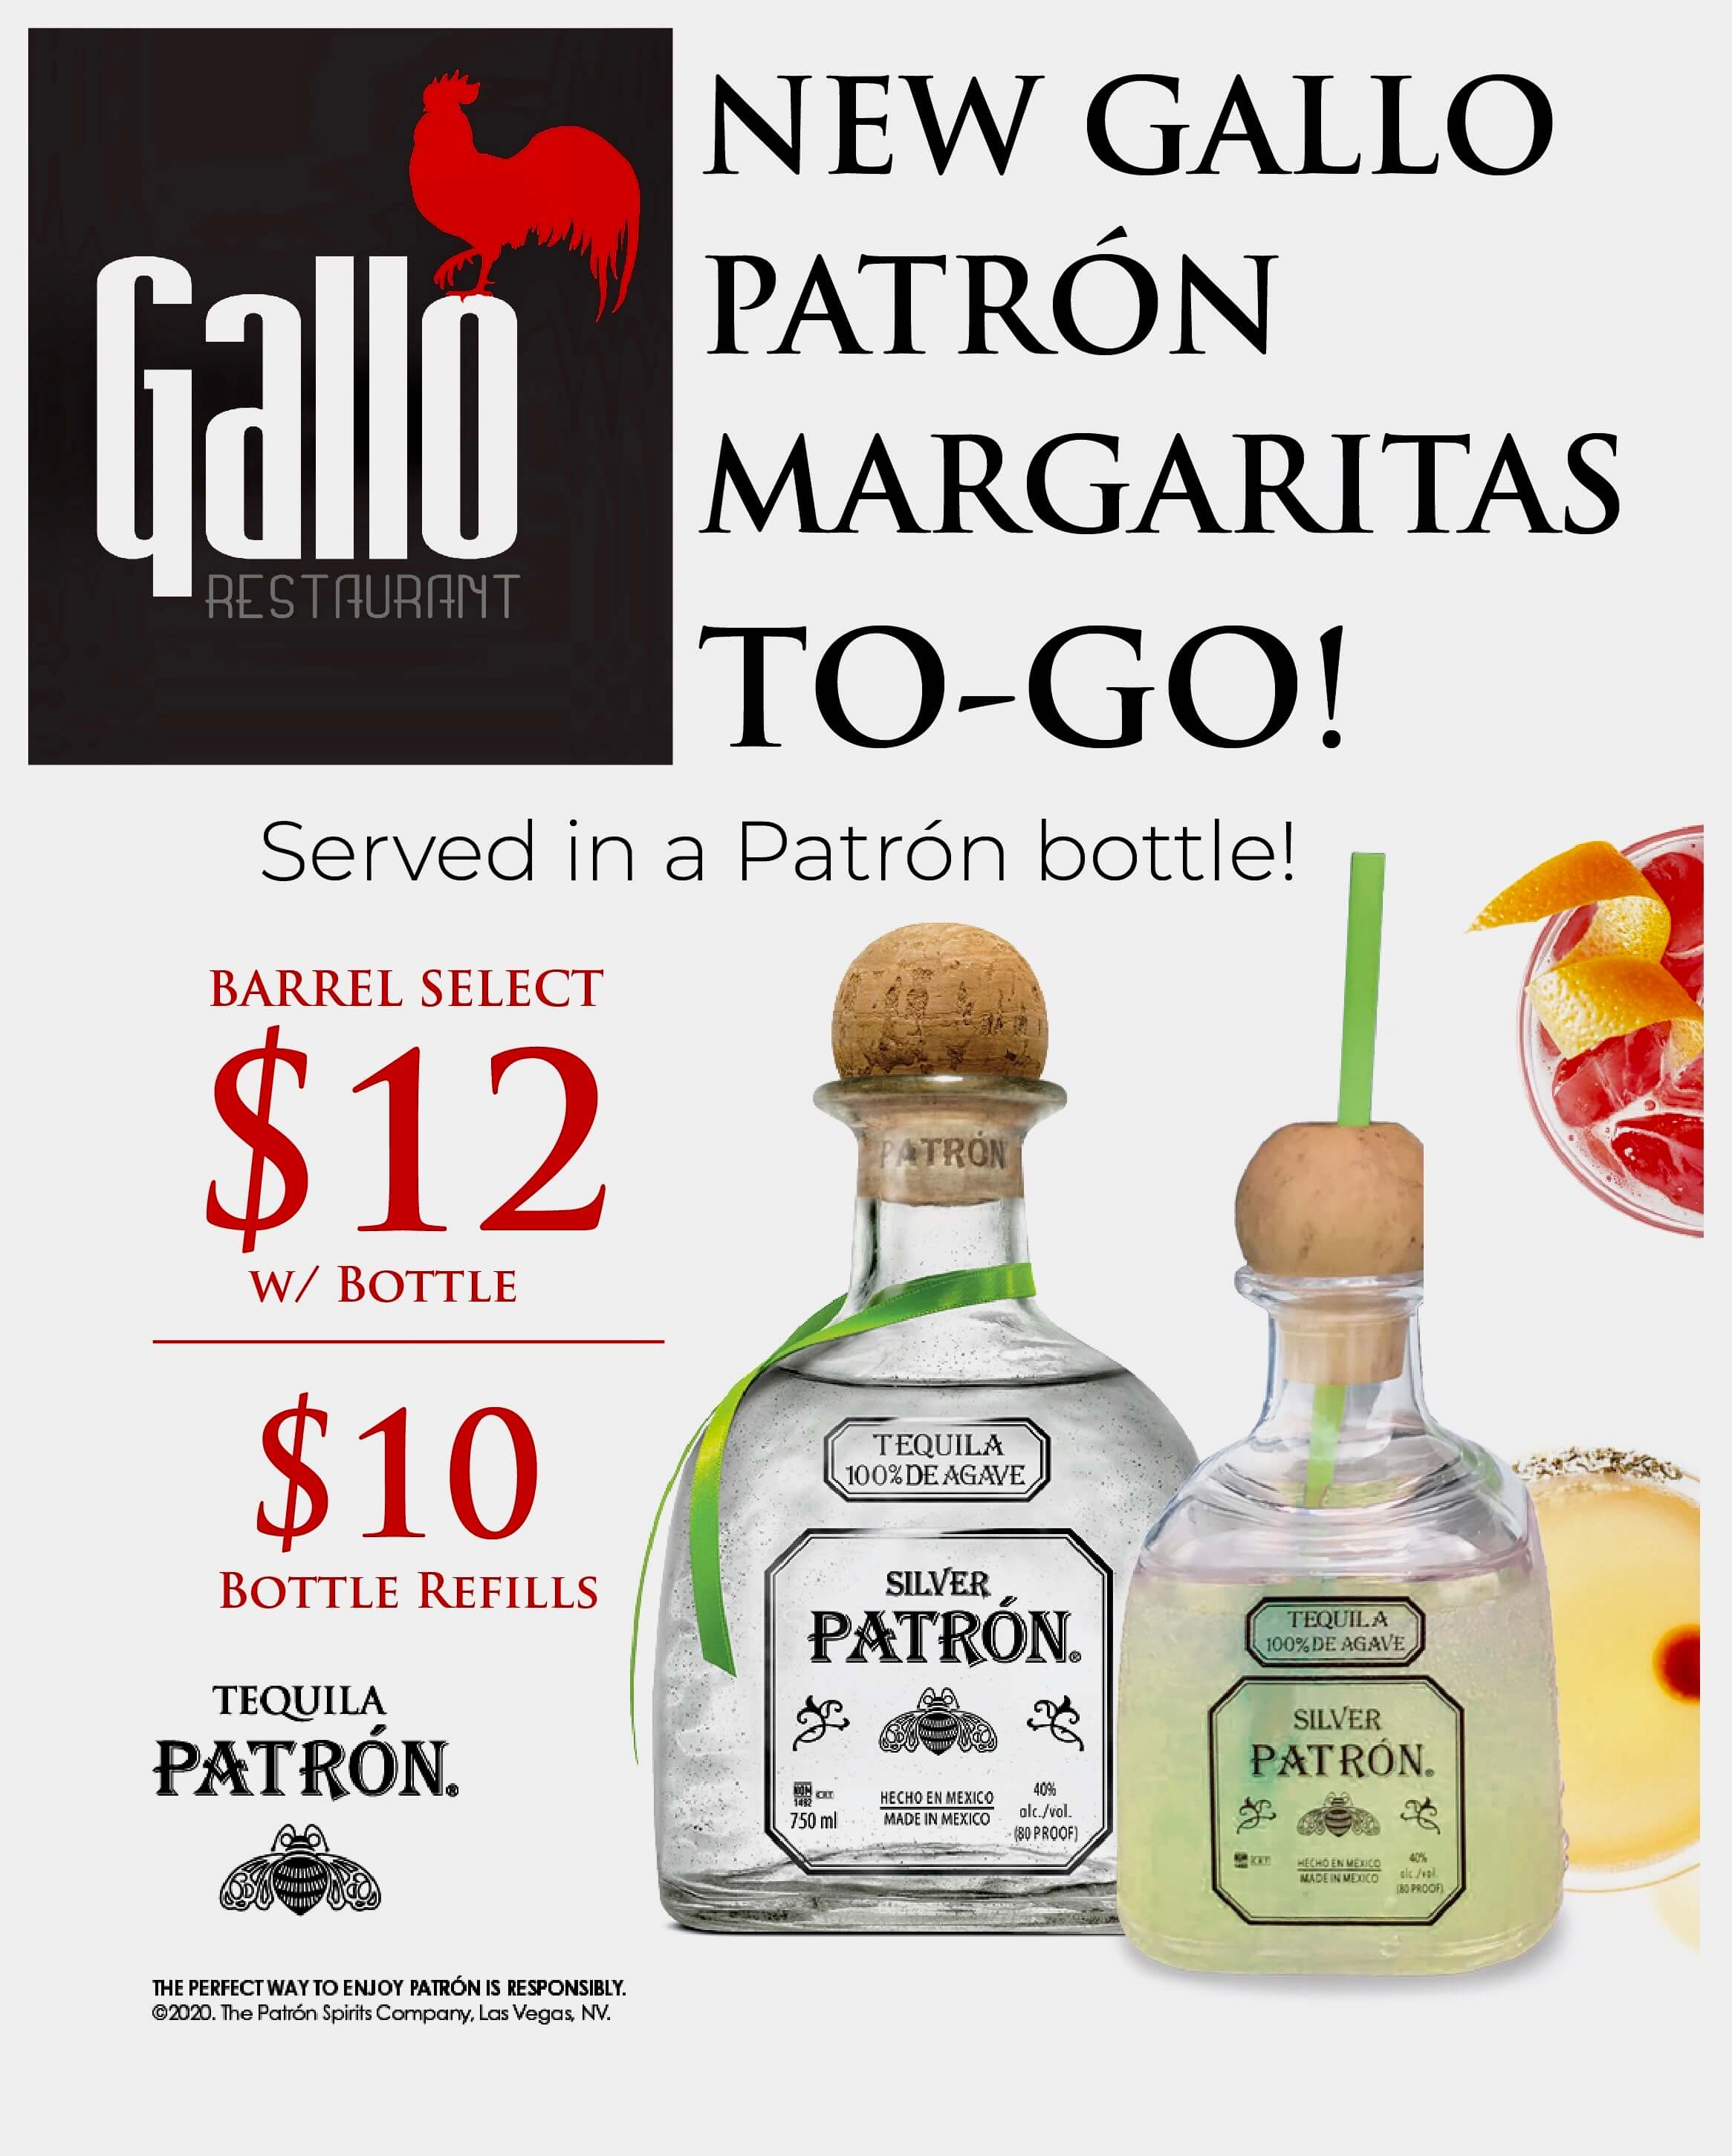 Gallo Restaurant Patchogue Catering Menu